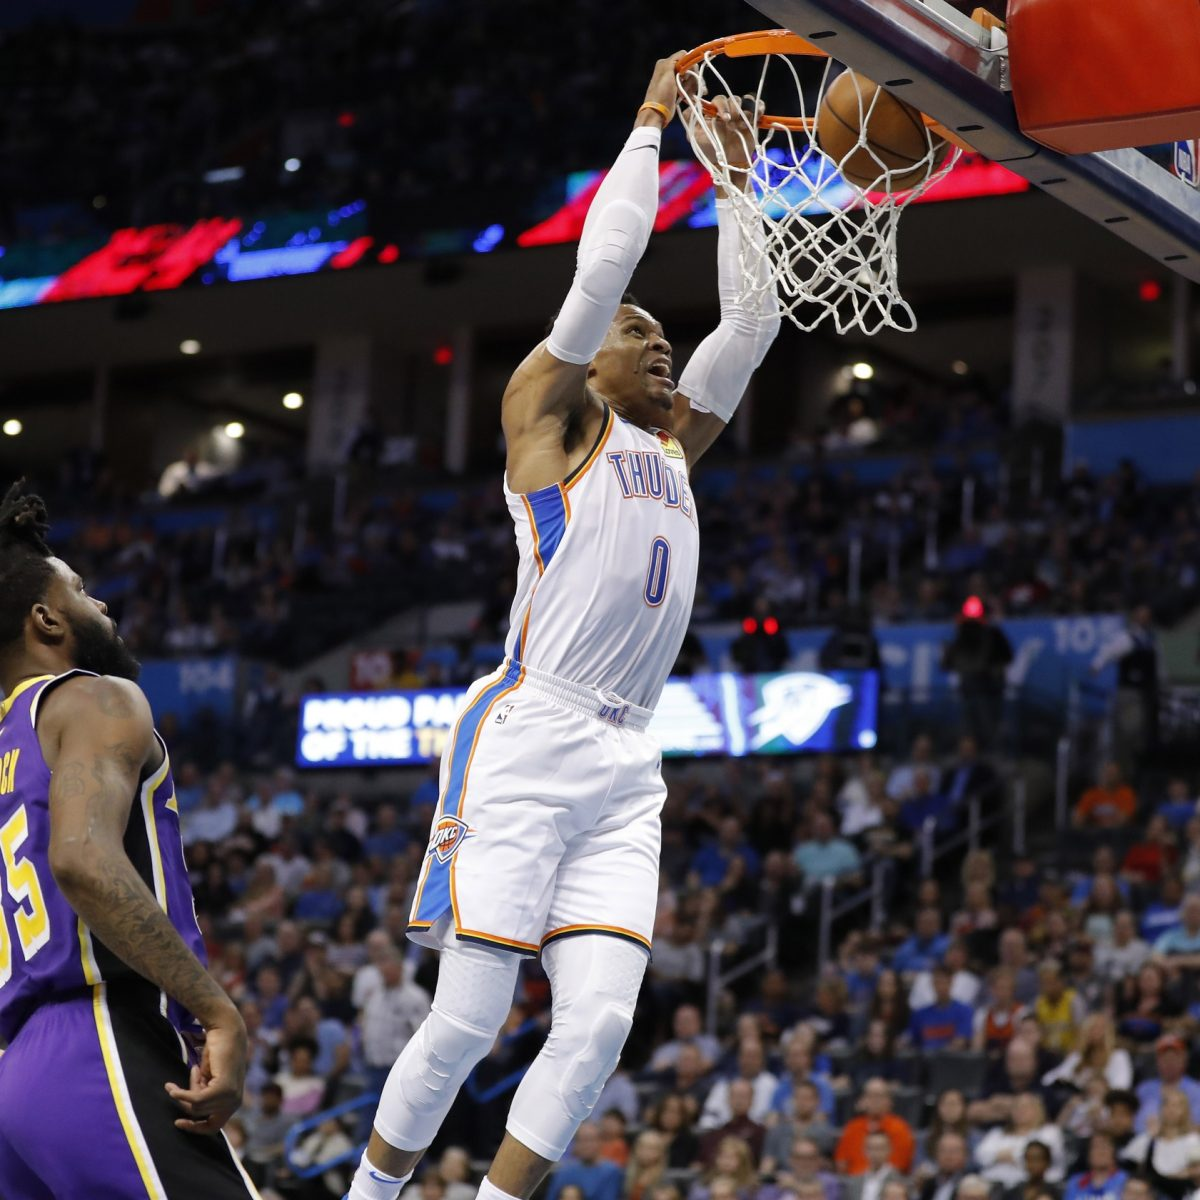 Nba Picks Nuggets And Lakers Game 7 Odds And Betting: Detroit Pistons Vs. Oklahoma City Thunder Prediction